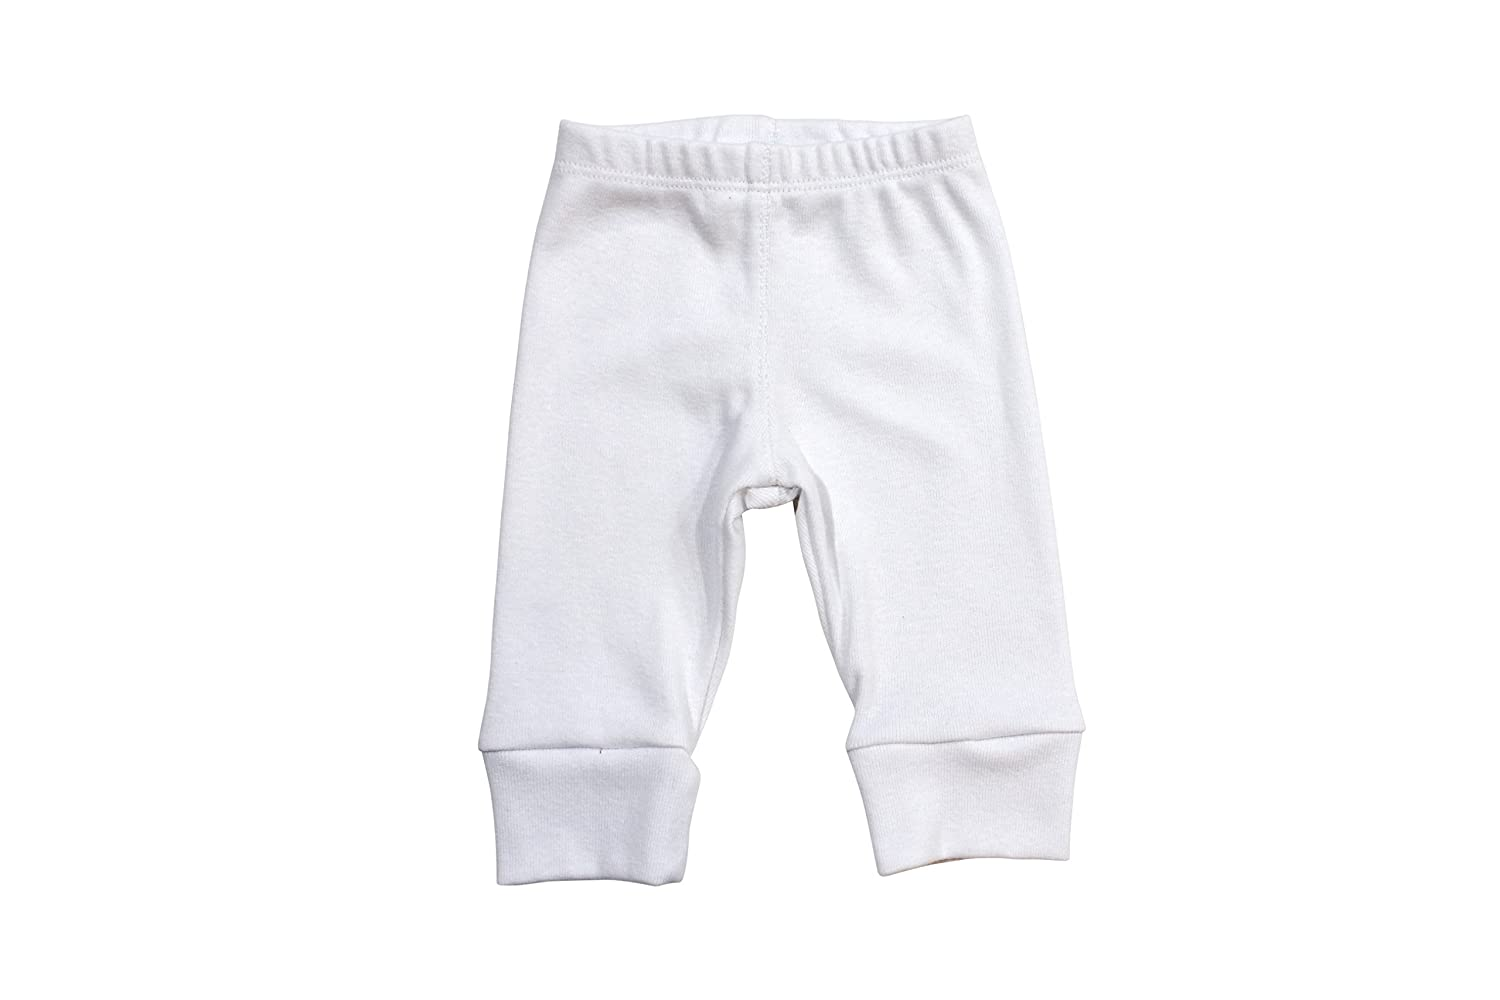 Christening Outfits for Boys Cuddle Sleep Dream Baby Boy Baptism Outfit Cotton Tie and Suspenders with White Pants